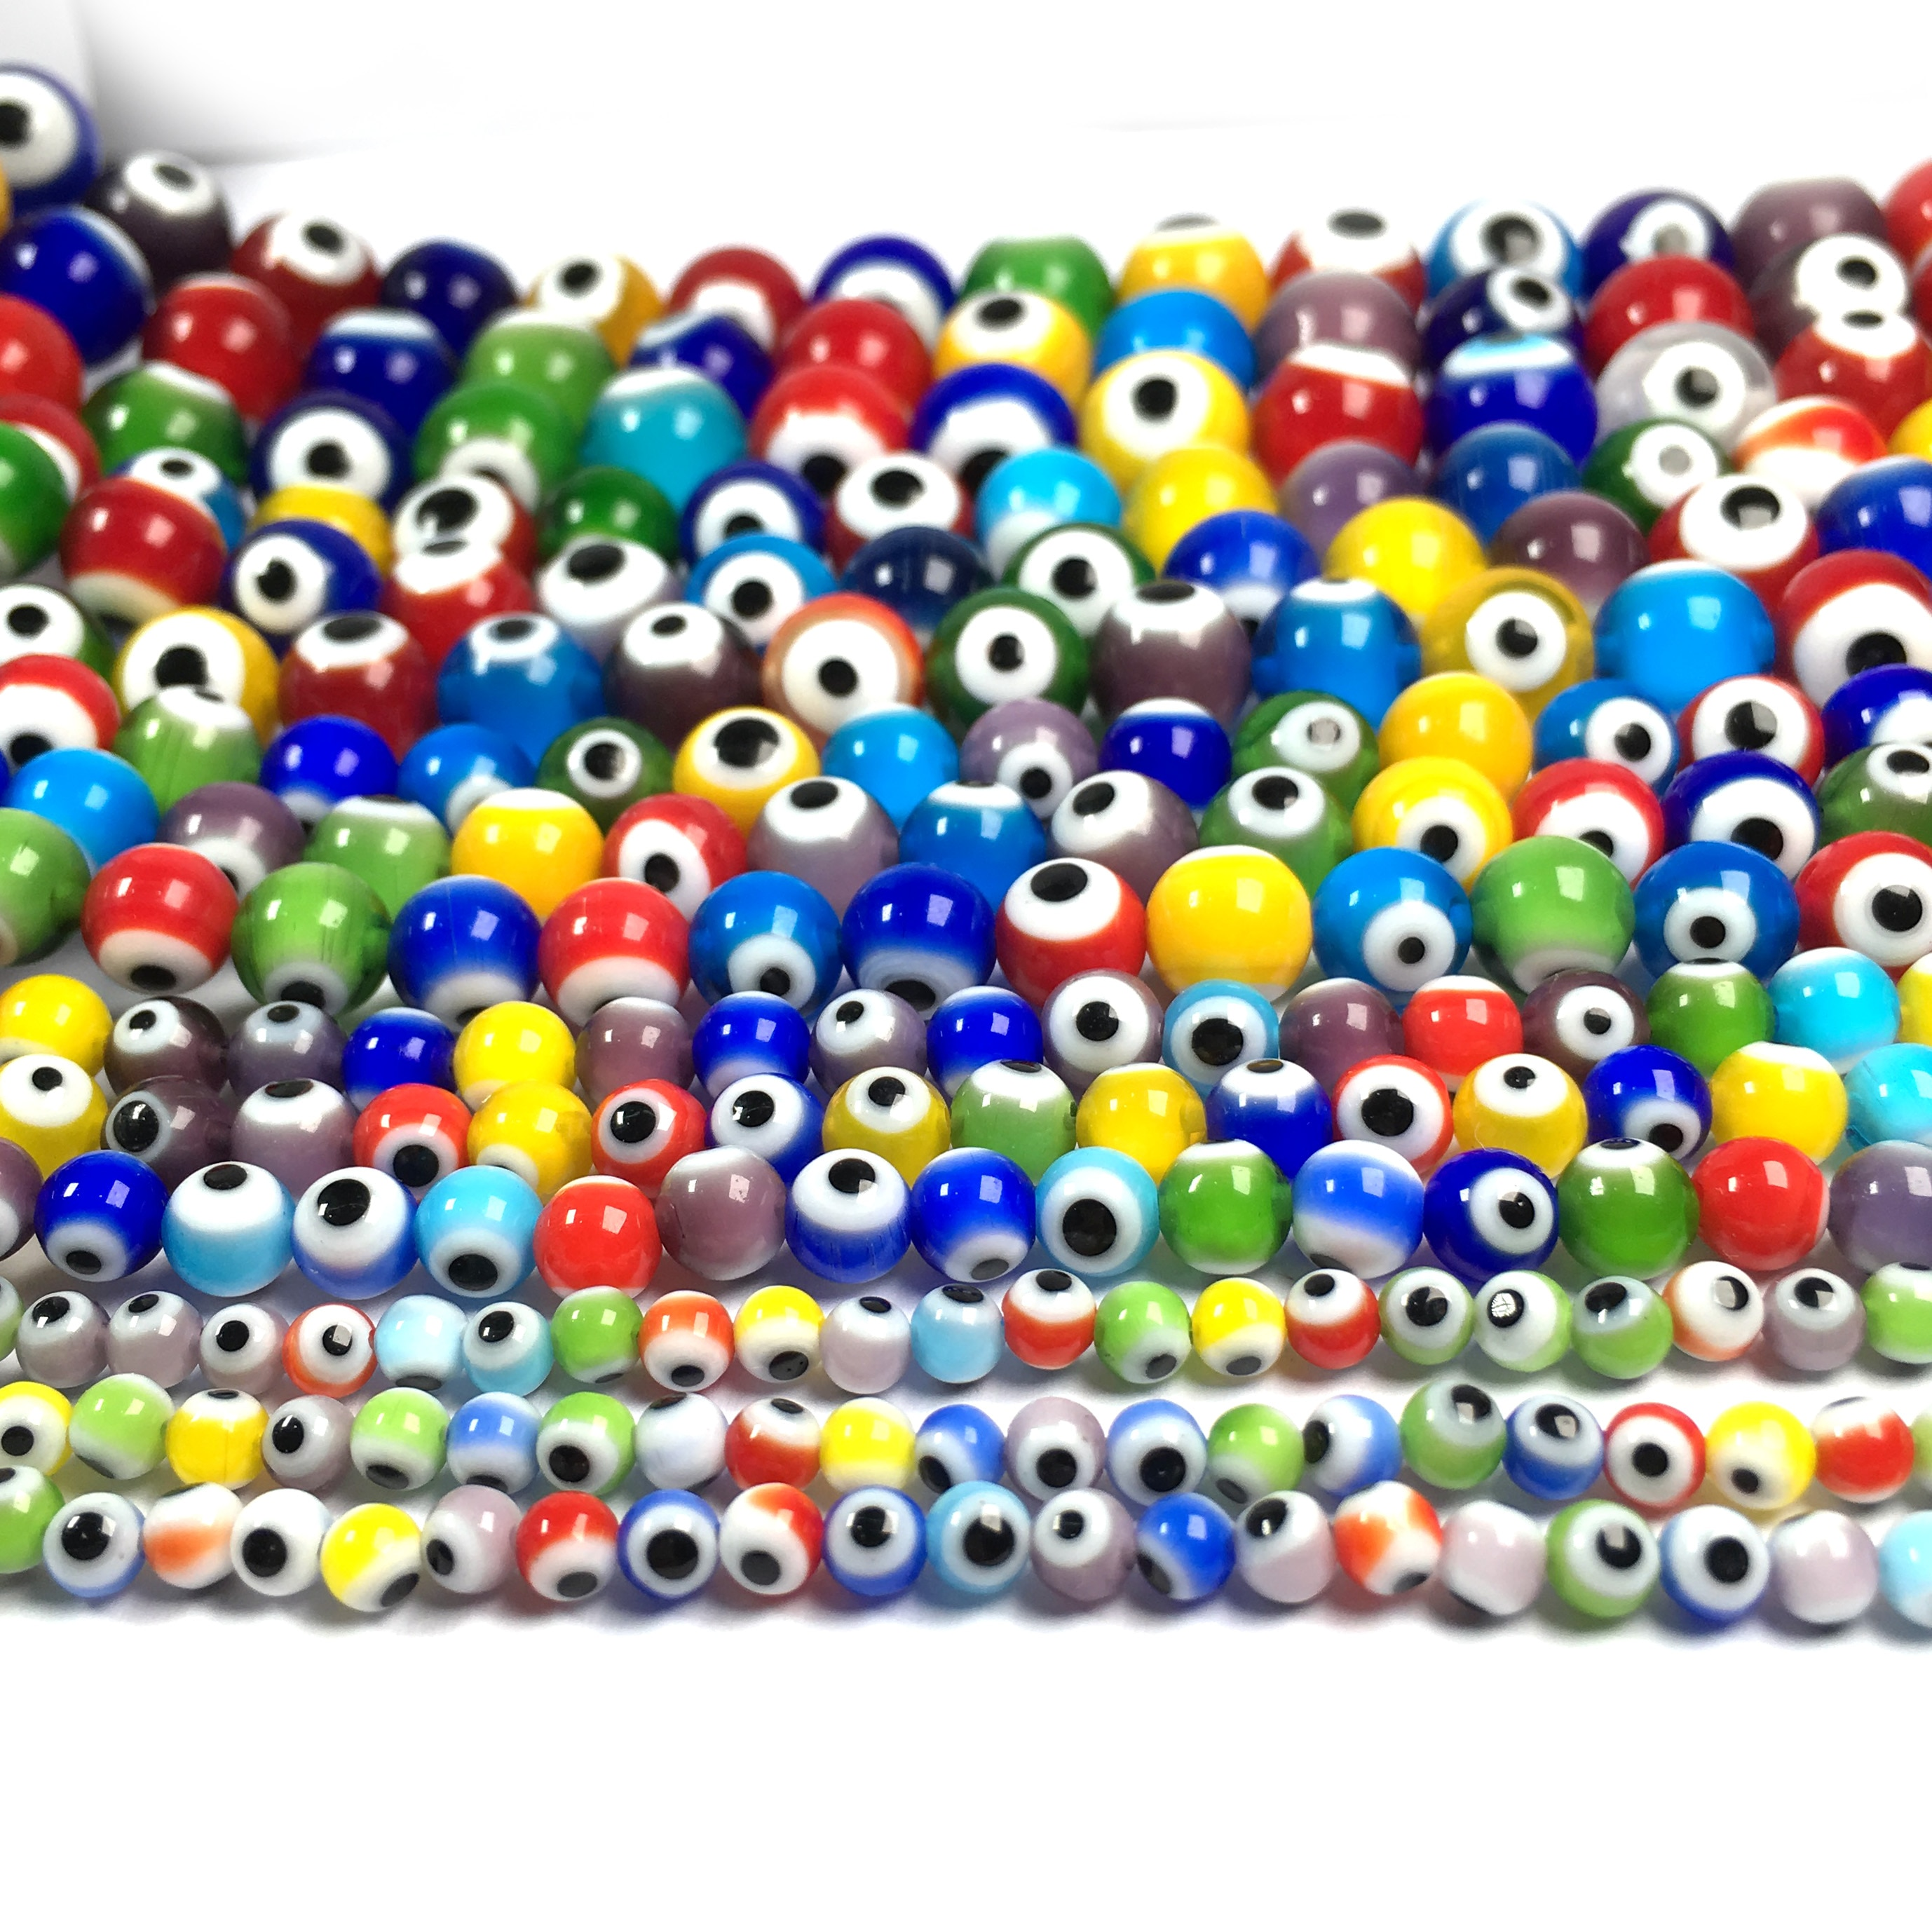 Trendy Multicolor Round Evil Eye Beads Lampwork Glazed Glass Beads for Women DIY Necklace Bracelet Making Jewelry Findings Gift  - buy with discount